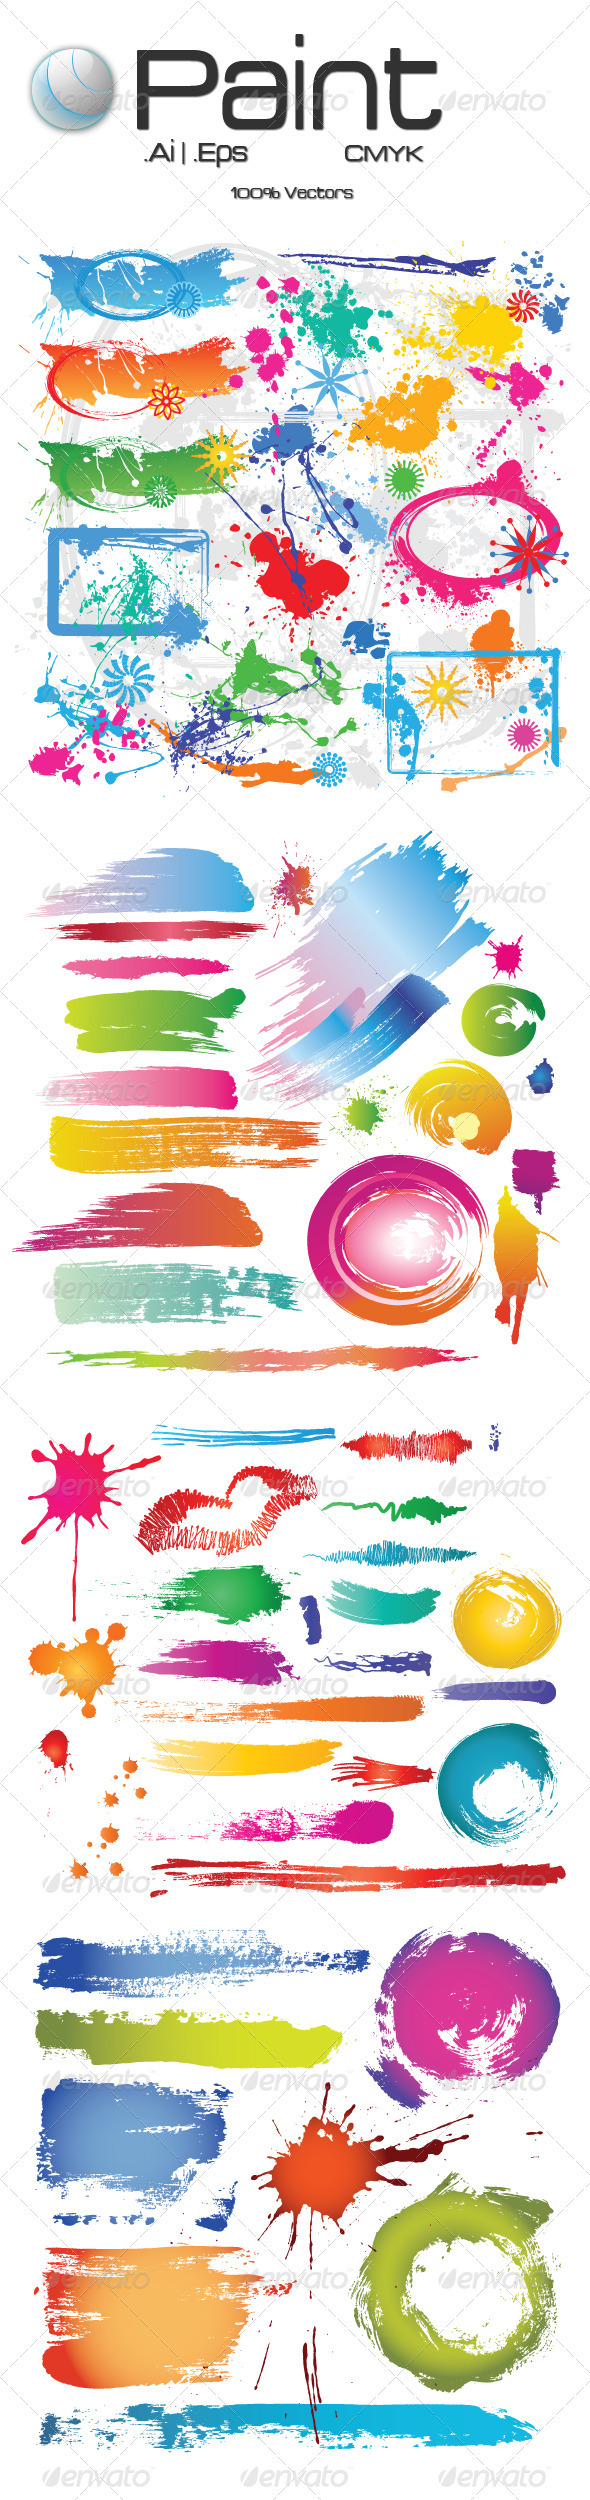 Paint - Decorative Vectors